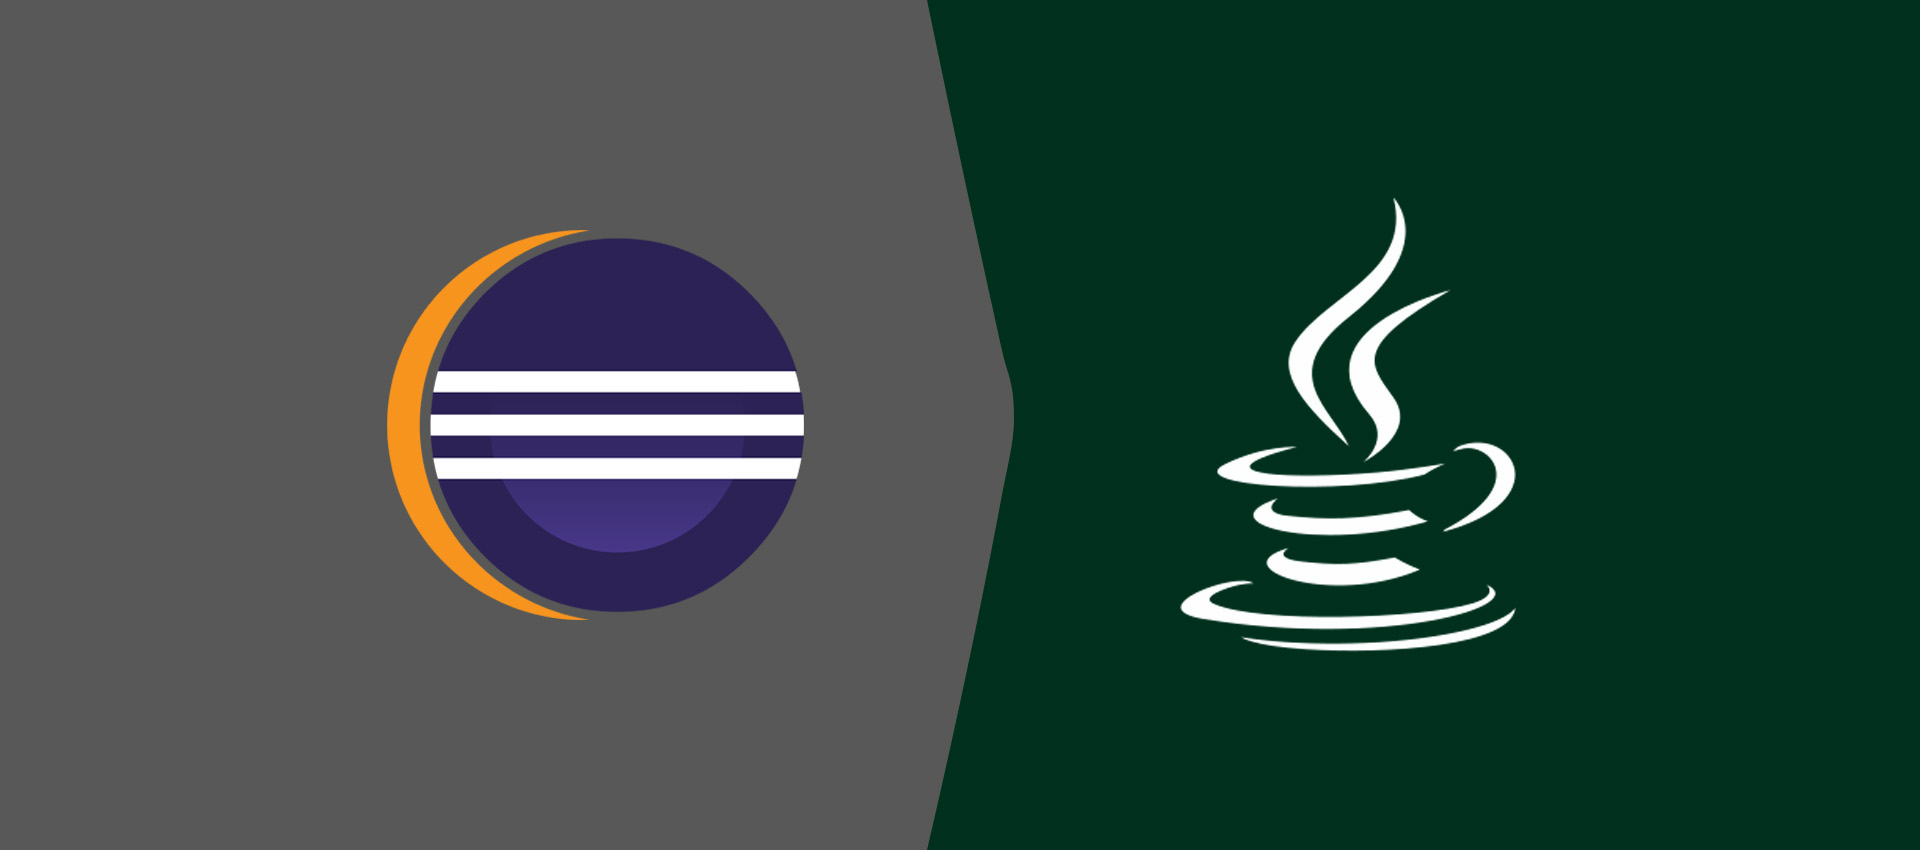 How To Install Eclipse For Java On Mac